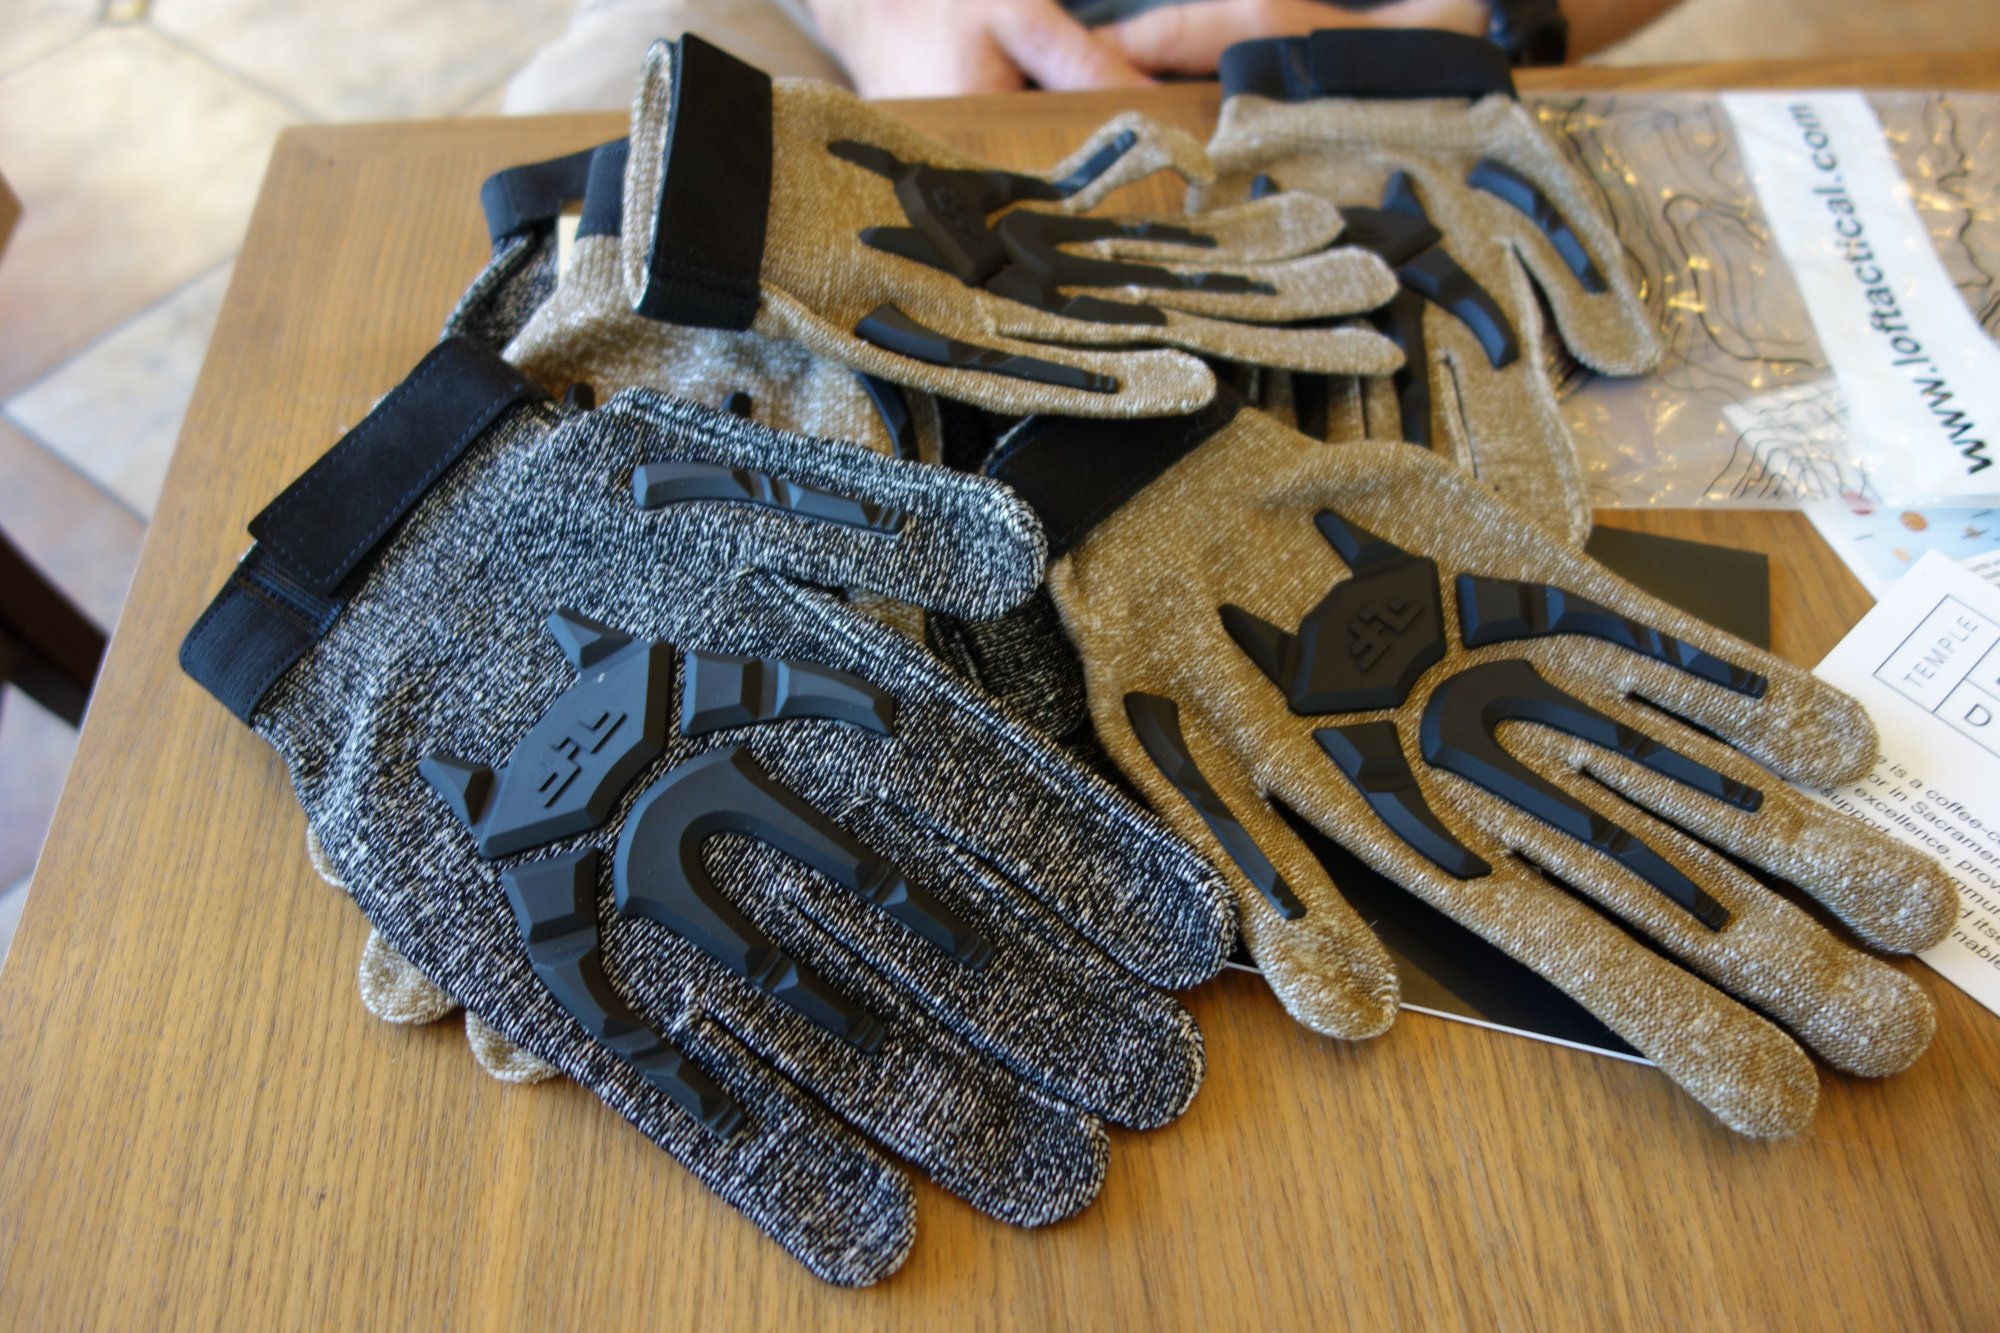 Line of Fire LOF Phantom Dyneema Cut Resistant Tactical Glove with Hard Knuckles and Silicone Print Gripping Material Tactical Gloves Combat Gloves Brian Miller Temple Coffee 8 16 13 David Crane DefenseReview.com DR 6 Line of Fire LOF Phantom Combat/Tactical Glove: Seamless Dyneema Cut Resistant Combat/Tactical Shooting Gloves with Hard Knuckles and Fingers and Silicone Gripping Material (Video!)